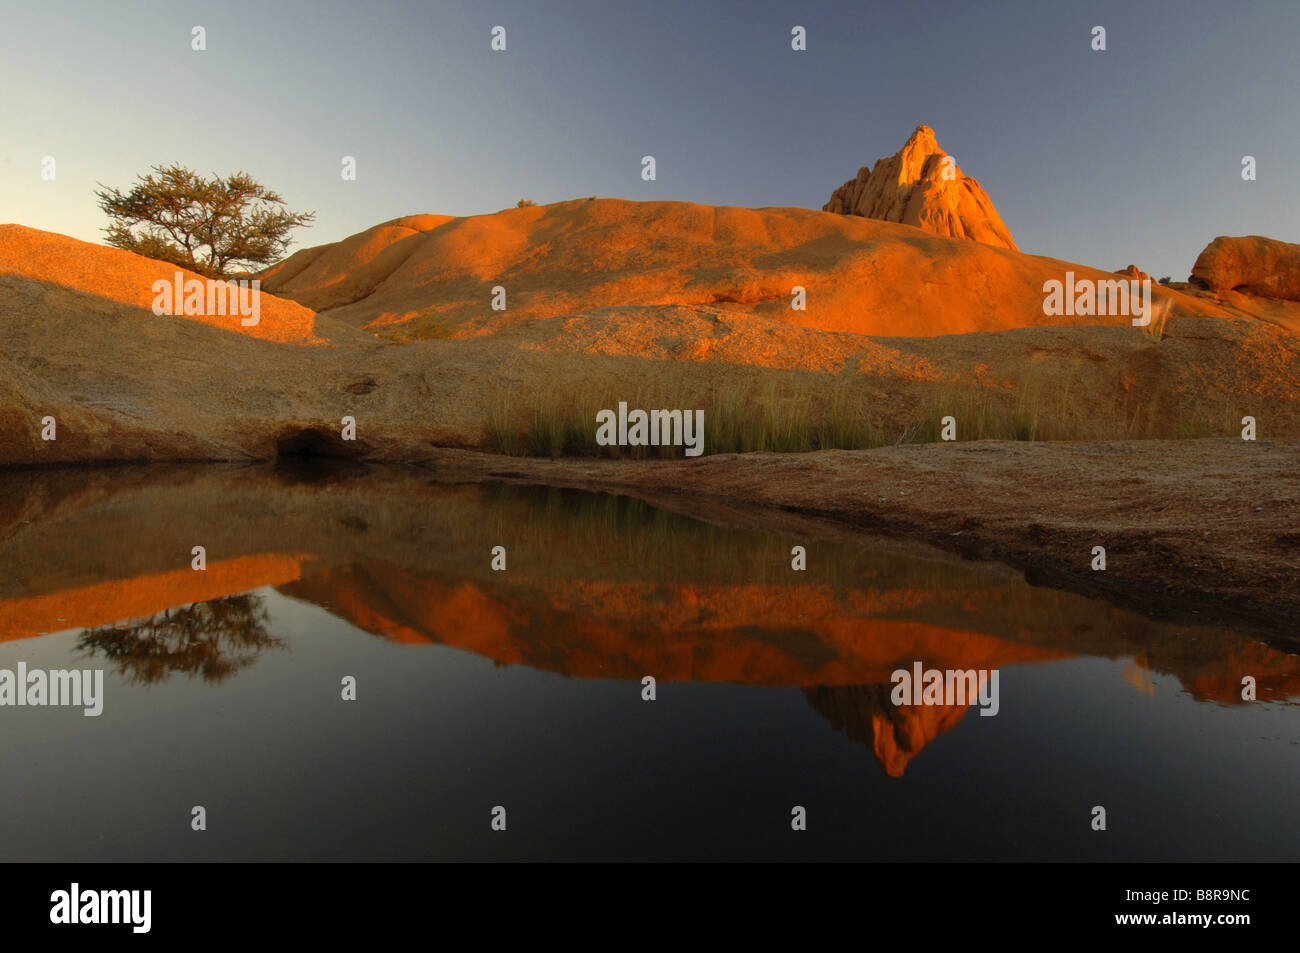 Spitzkoppe mirroring on water surface in evening light, Namibia Stock Photo